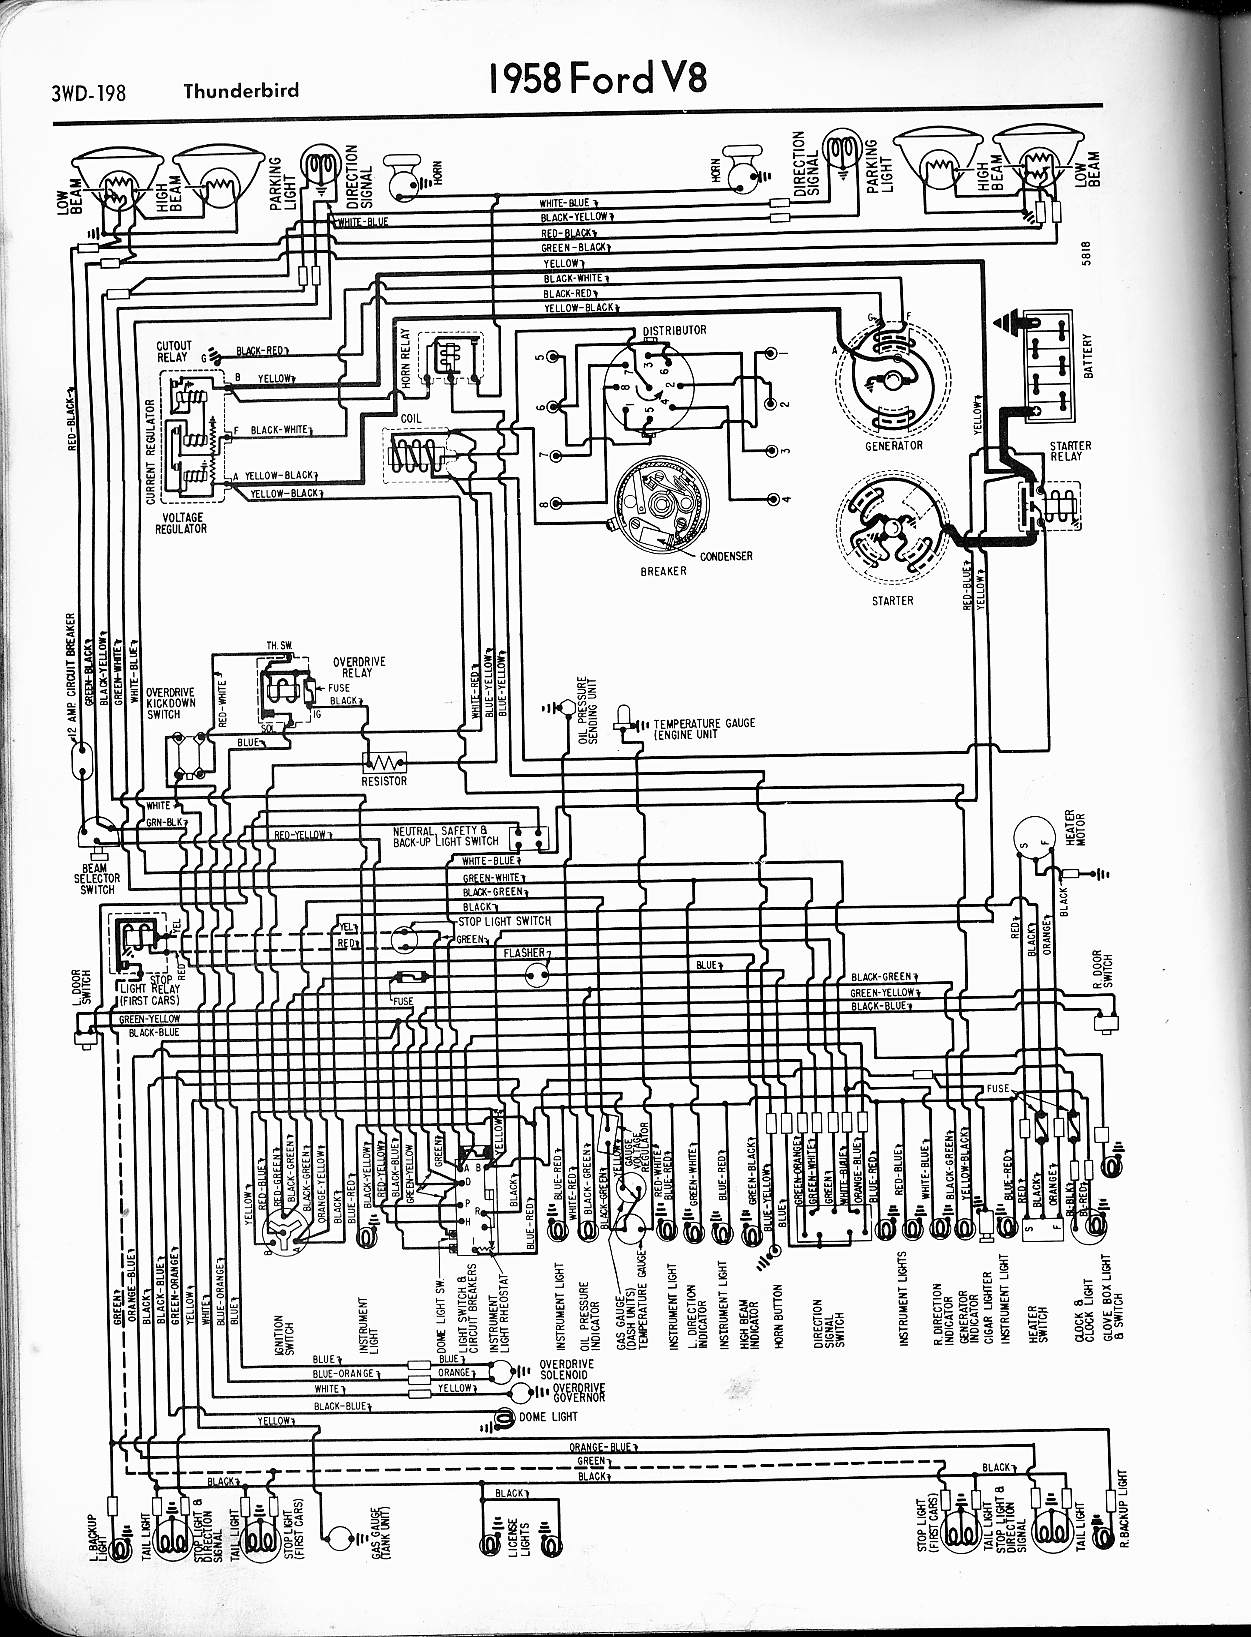 1958 Vw Wiring Diagram Schematic T2 1977 57 65 Ford Diagrams 1988 Bronco Dash 1957